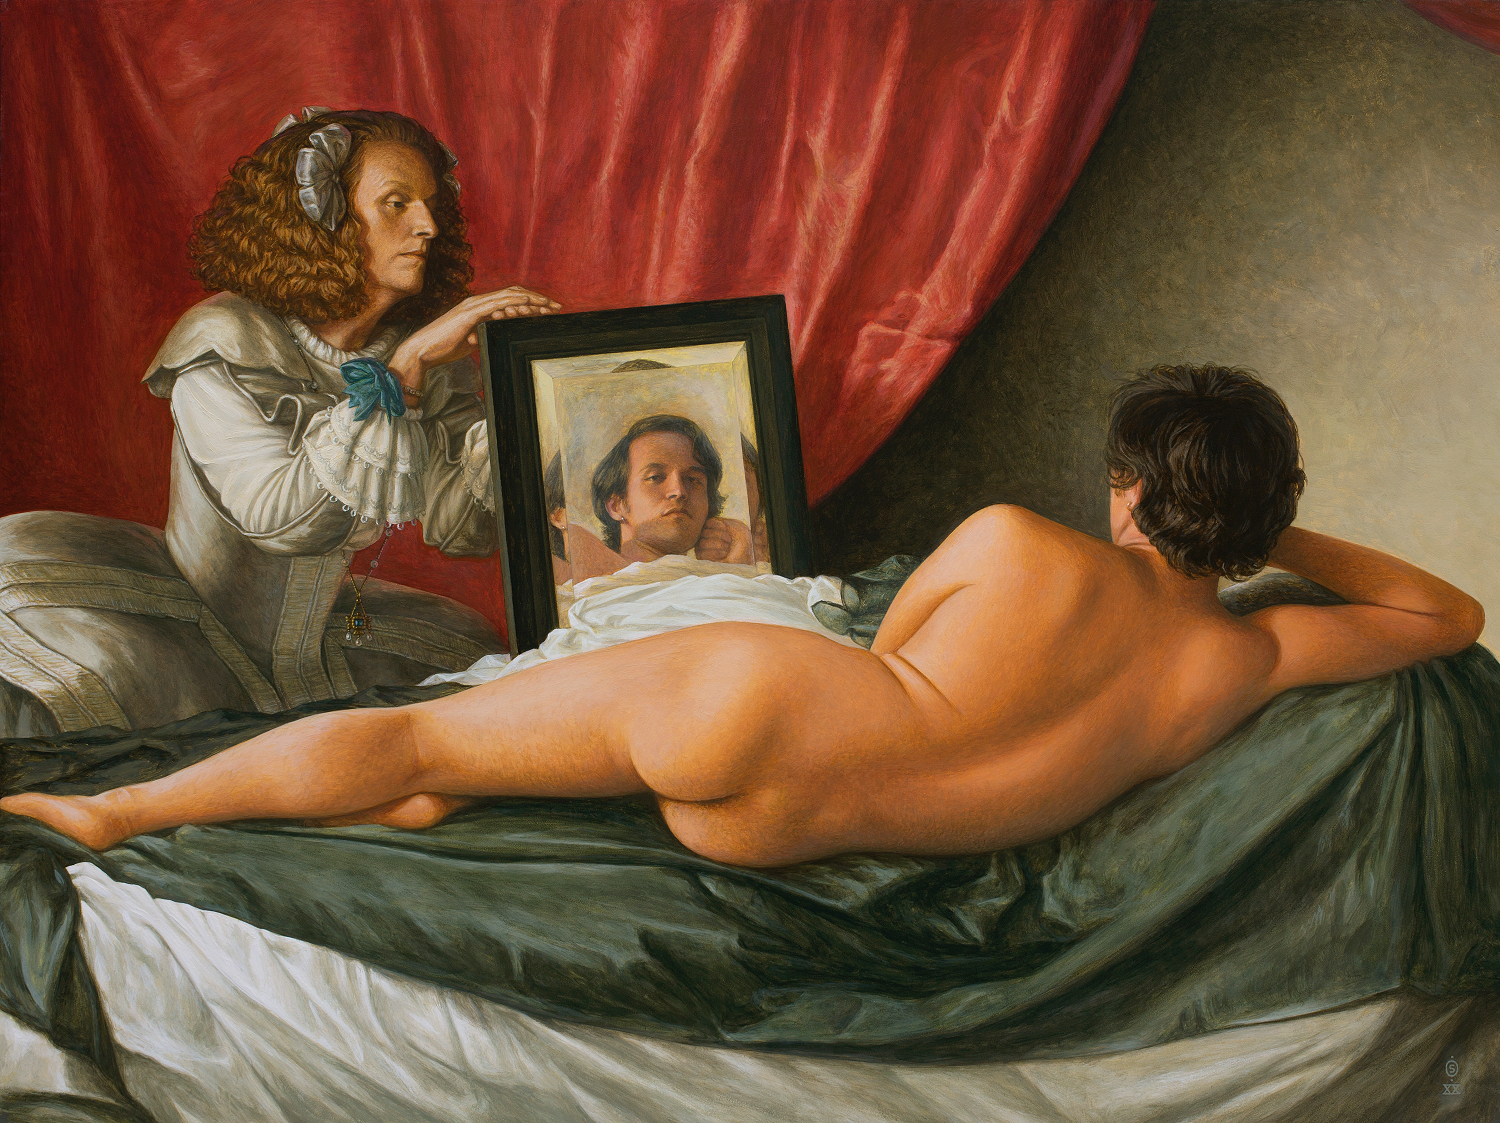 An individual lies on a couch, naked, with their back to the viewer—kneeling beside the bed, another holds a mirror, in which the first views themselves.